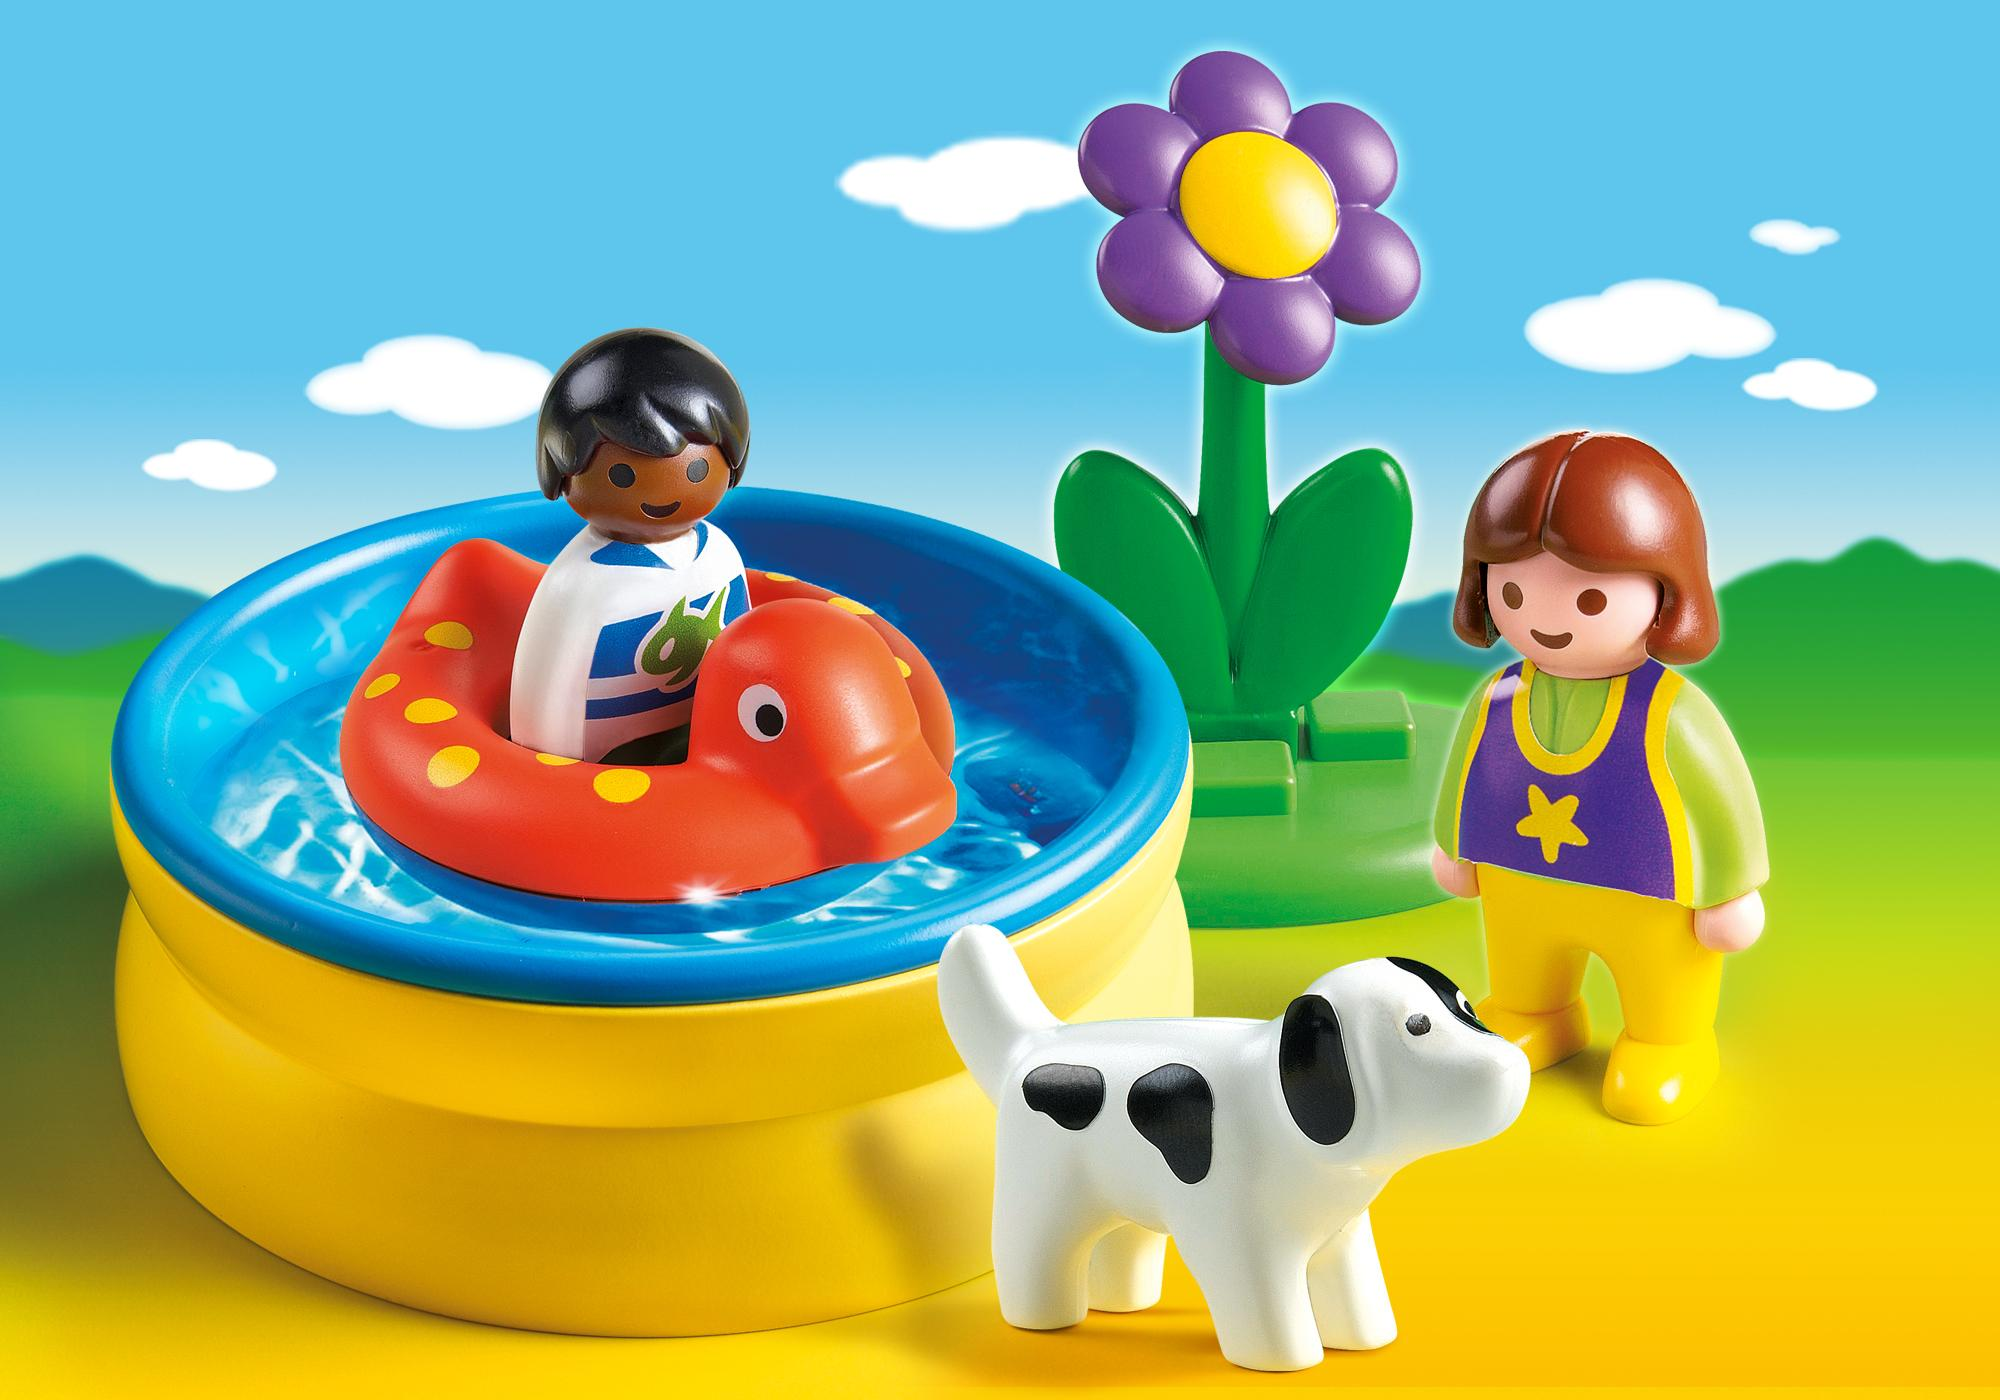 http://media.playmobil.com/i/playmobil/6781-A_product_detail/Kinder mit Planschbecken